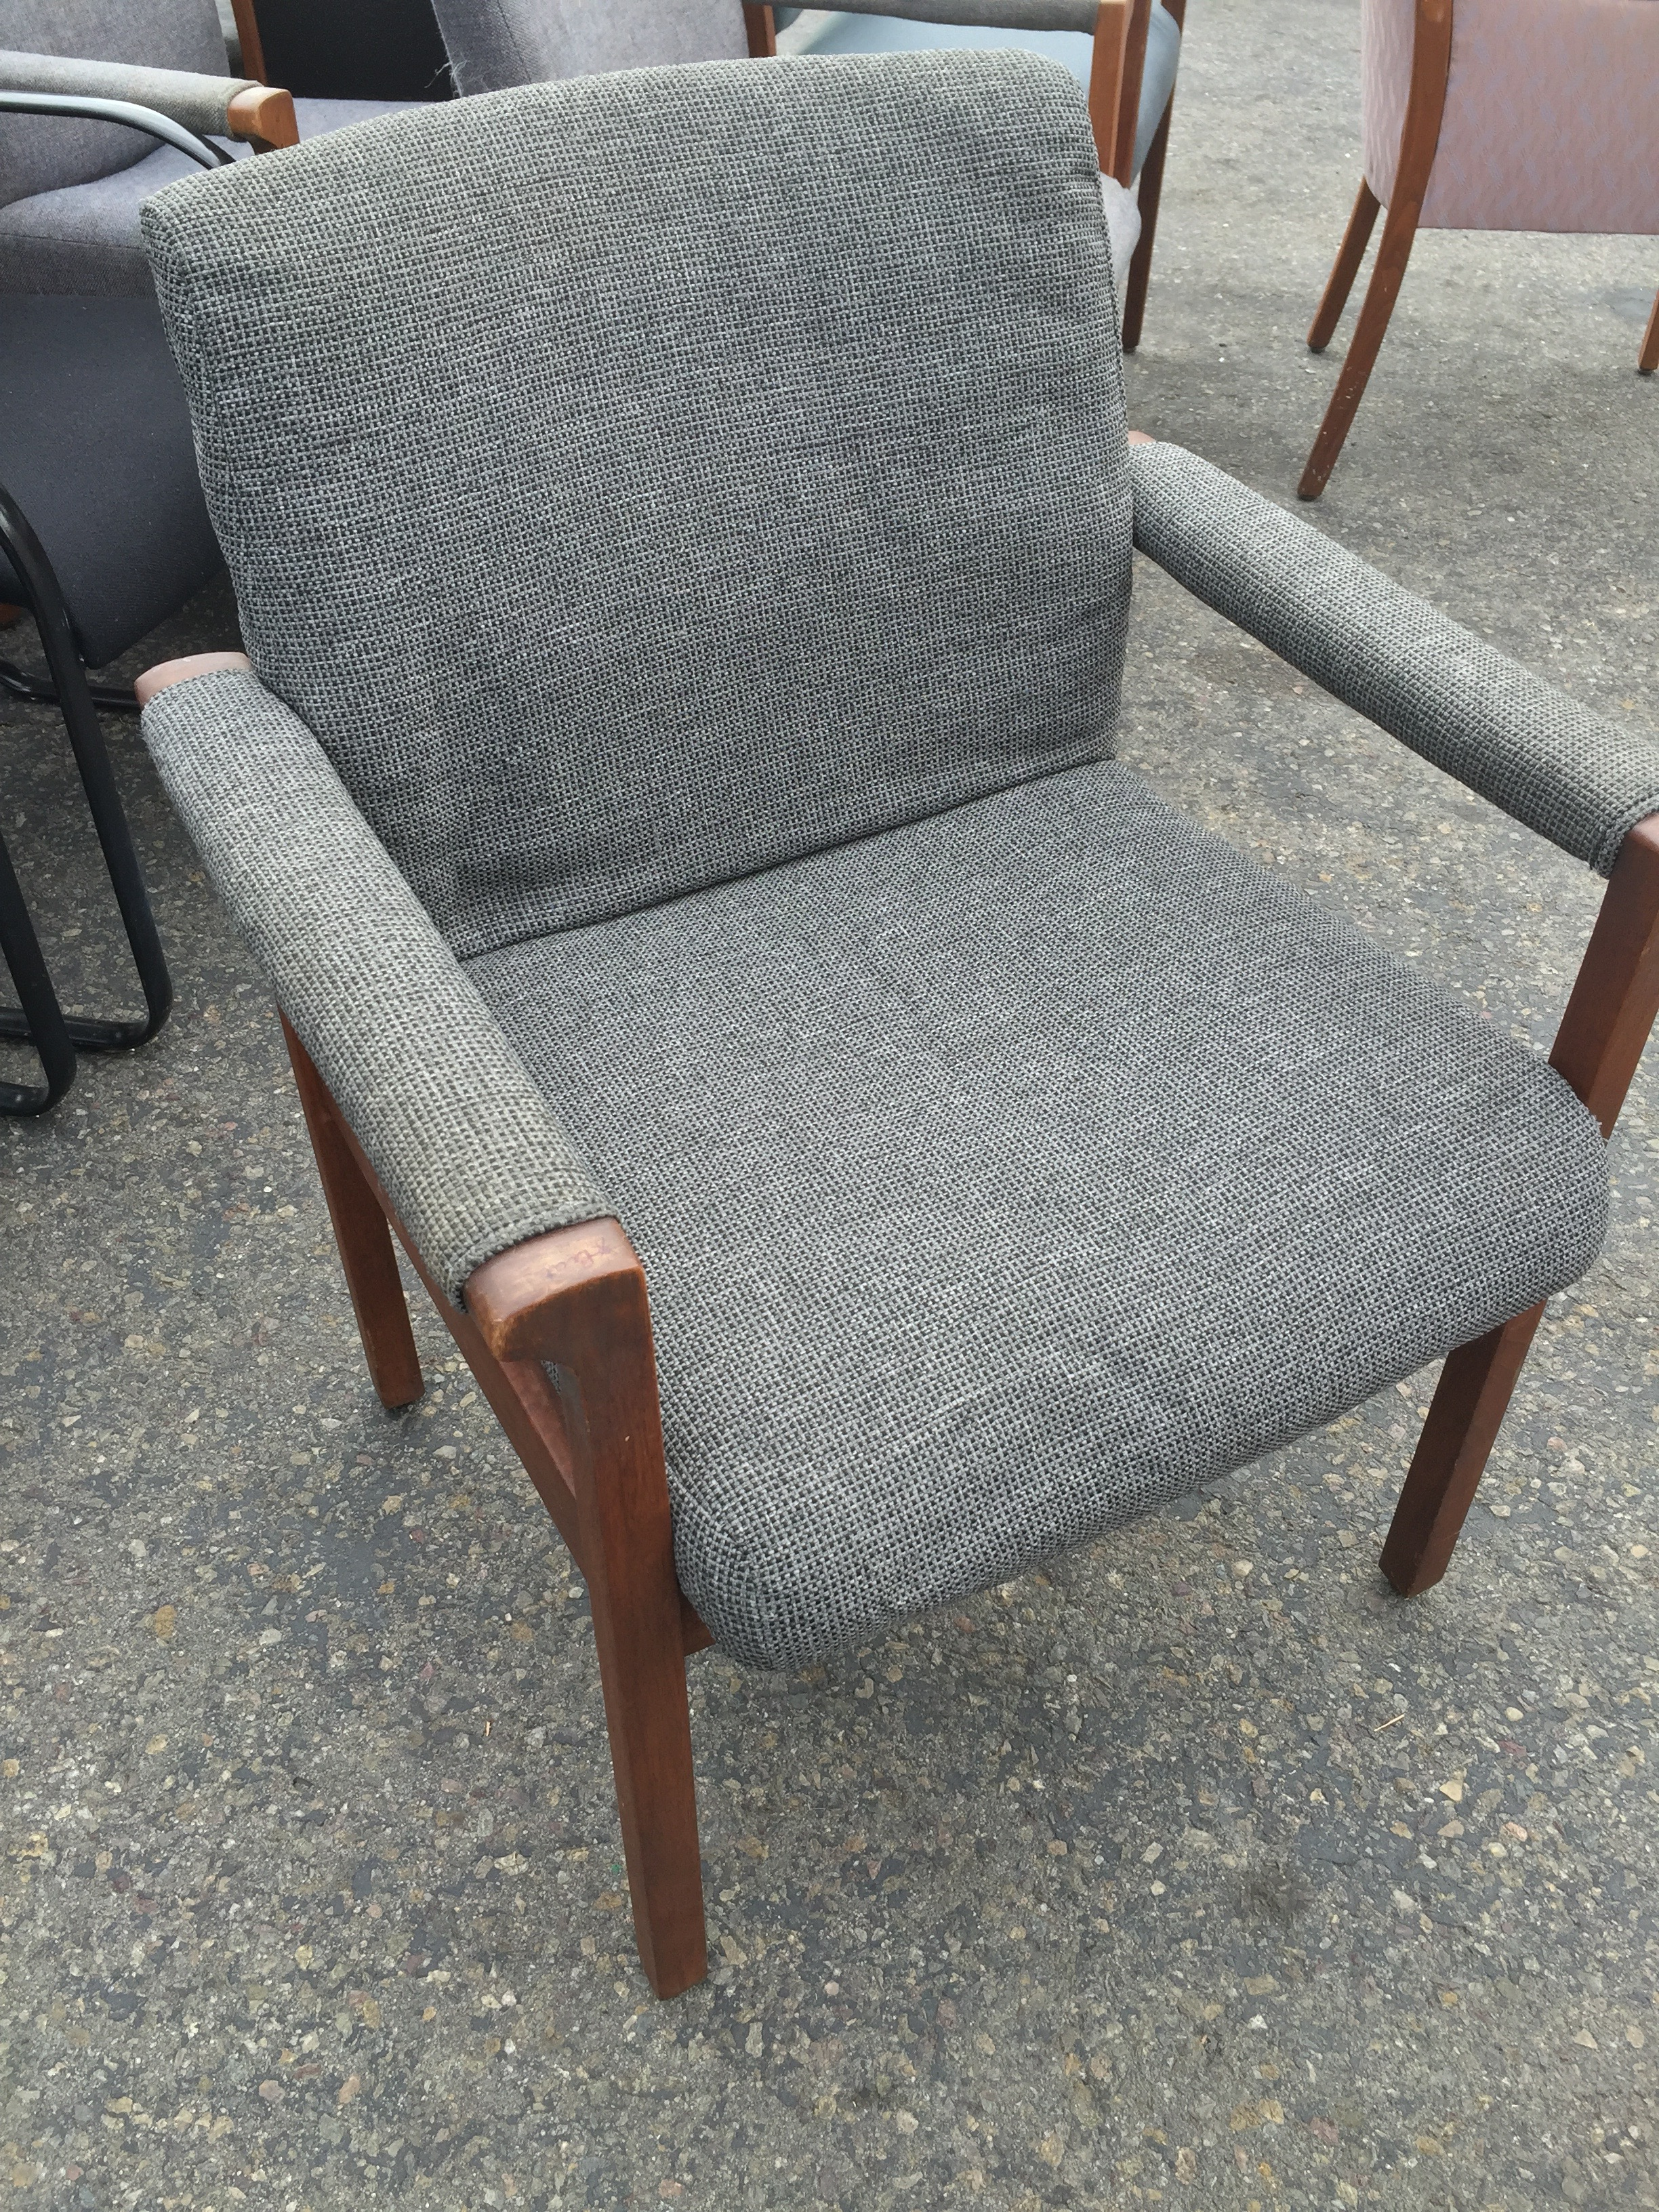 Gray Guest Chair 8490 New And Used Office Furniture In Los Angeles And Orange County